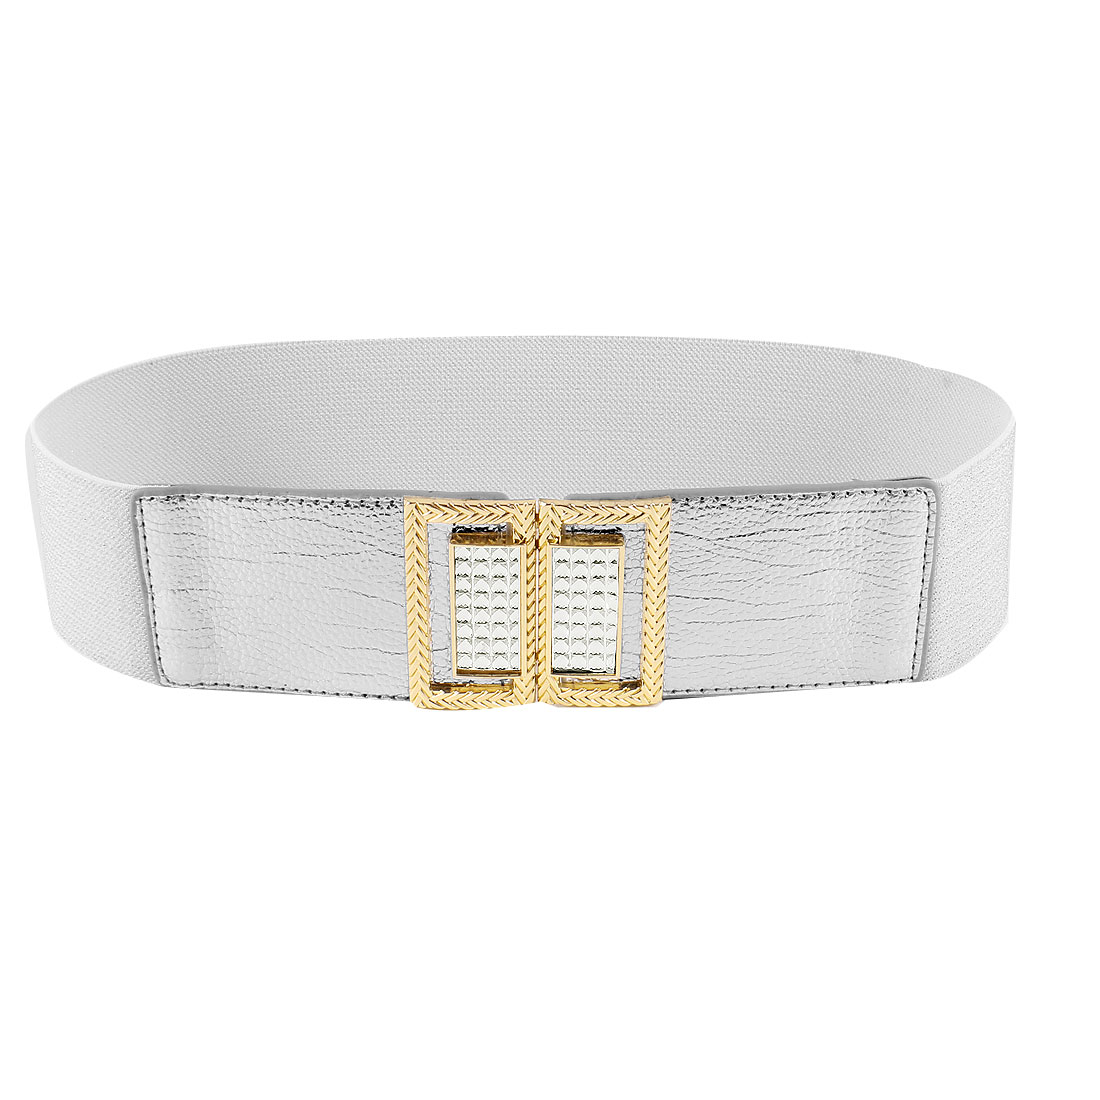 Silver Tone Interlocking Buckle Rhinestone Adorning 6cm Wide Elastic Belt for Women